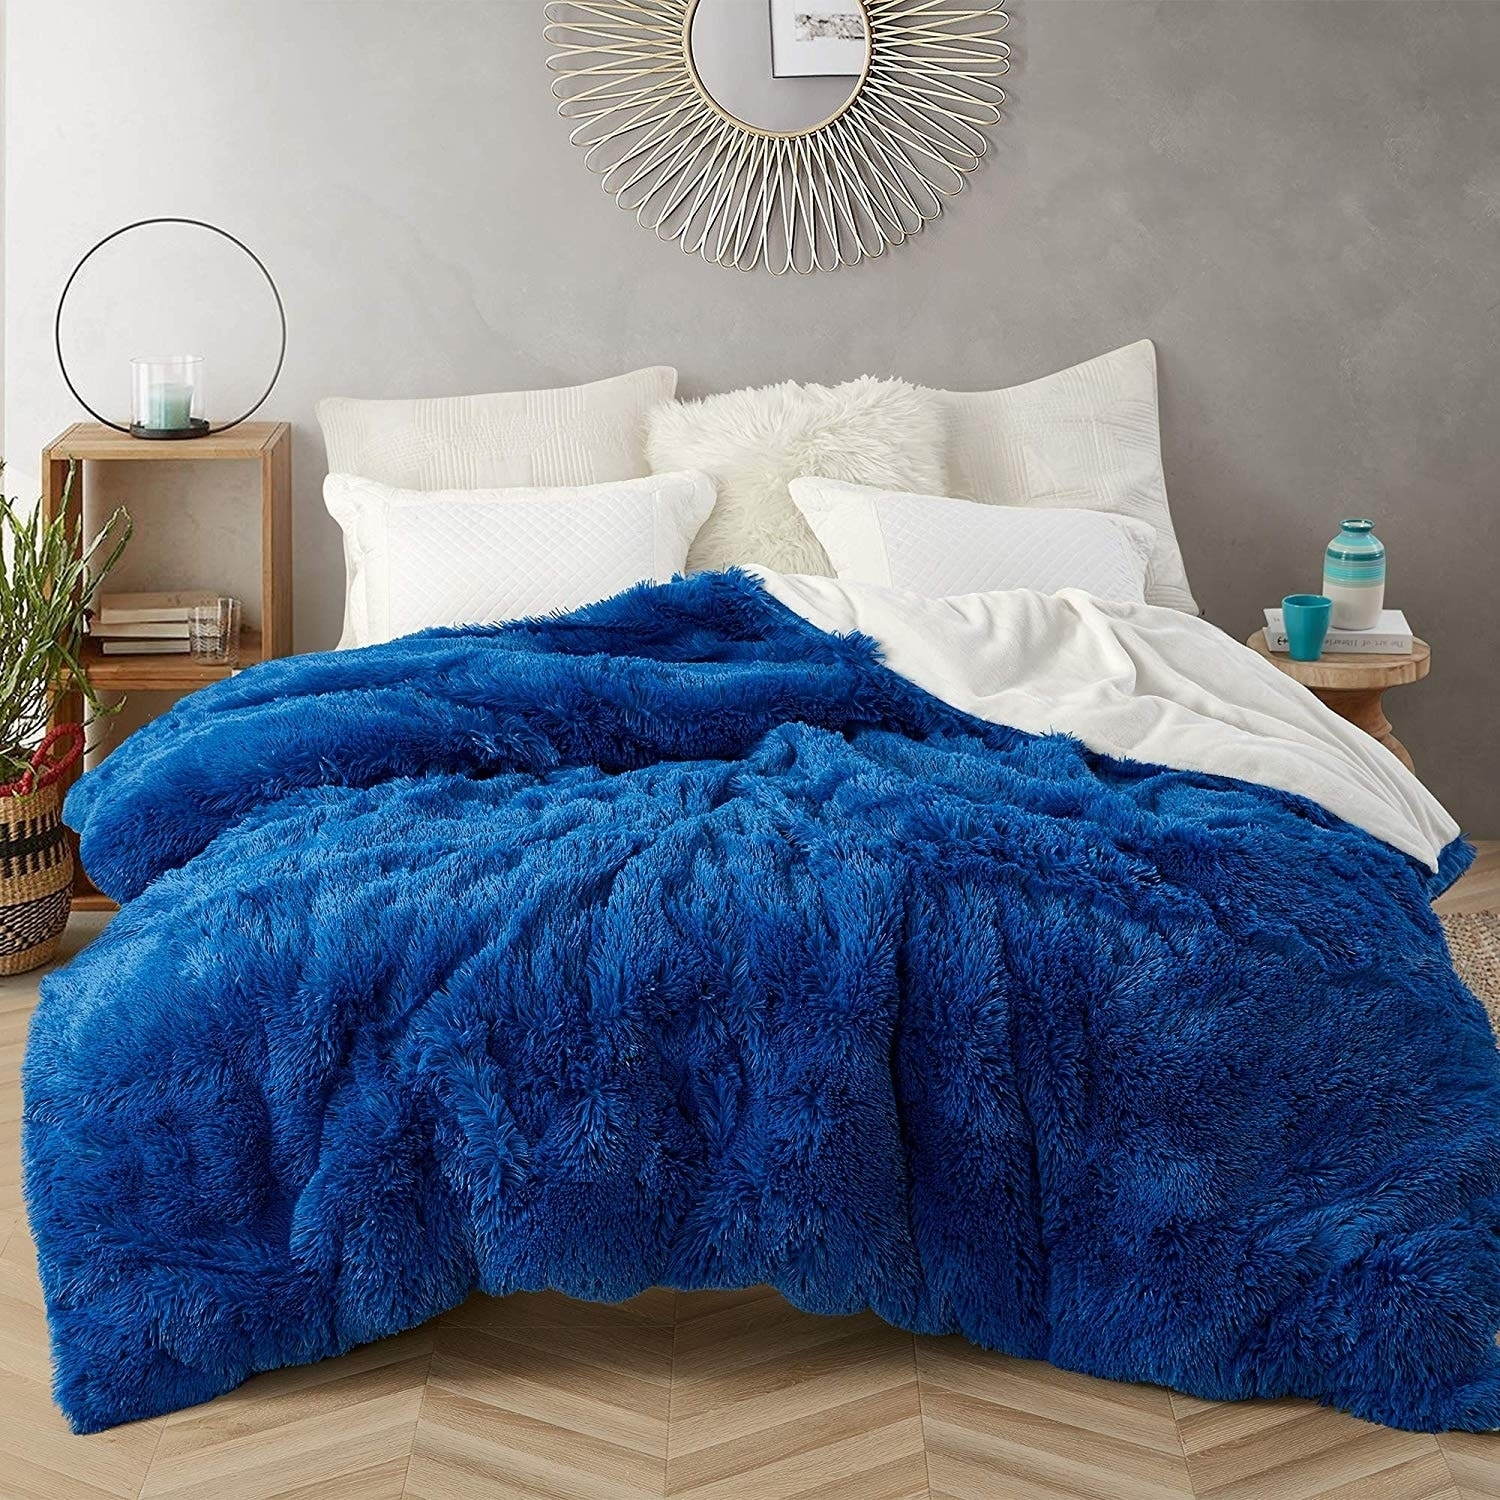 Coma Inducer Oversized Duvet Cover Are You Kidding Royal Blue White Overstock 29003860